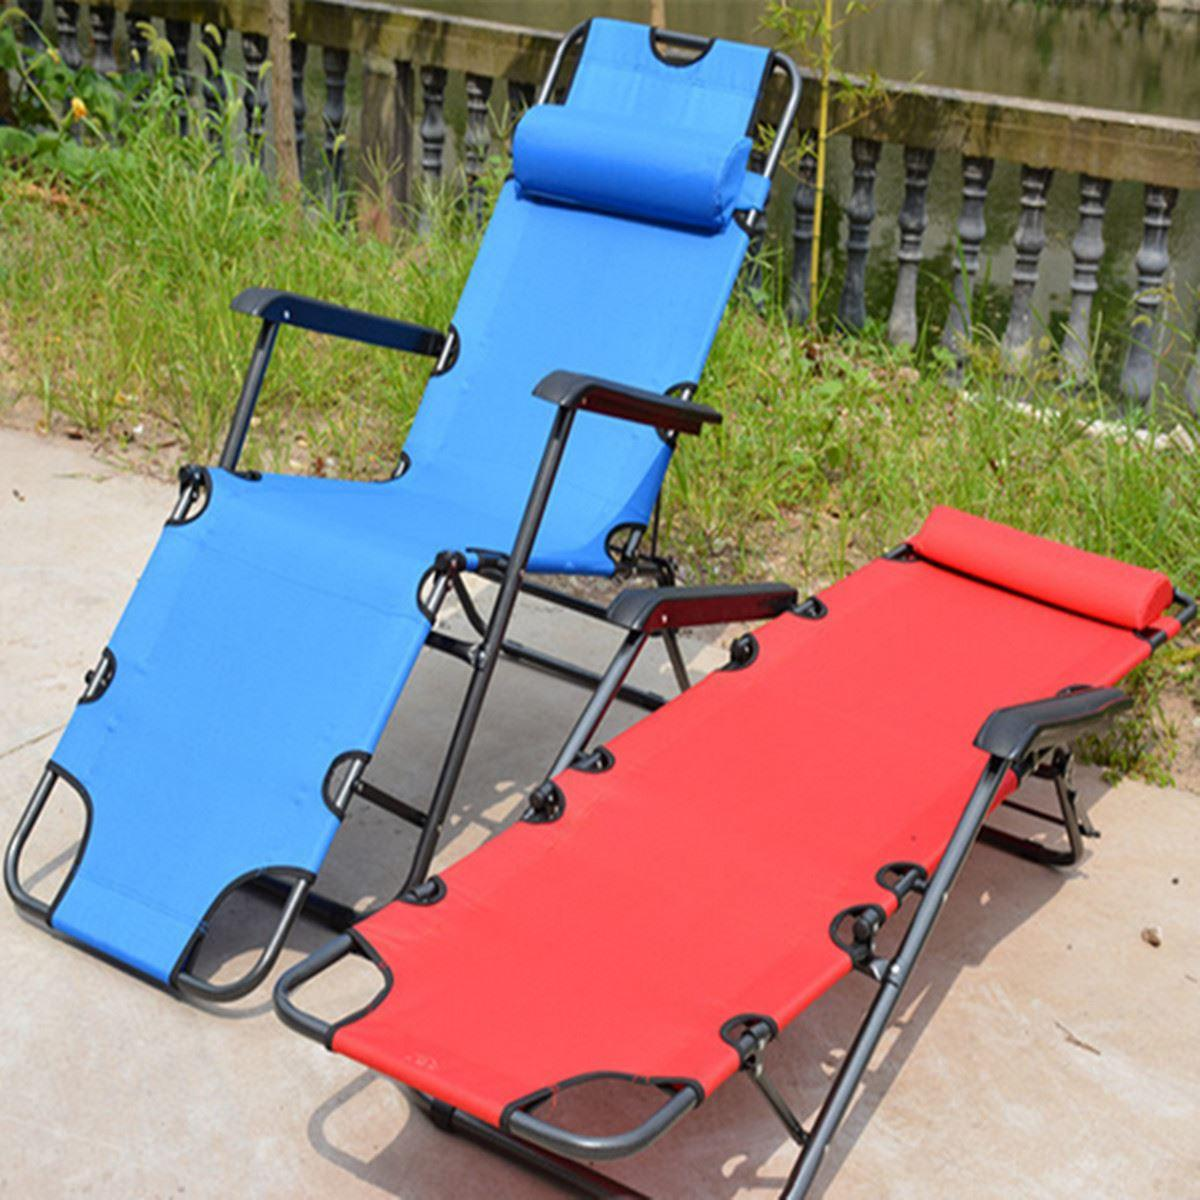 178*61*30cm Portable Metal Oxford Cloth Folding Chairs Office Napping Chairs  Beach Bed Chair Outdoor/ Swimming Pool Lying Chair Tie Chair Waiting Chair  ...